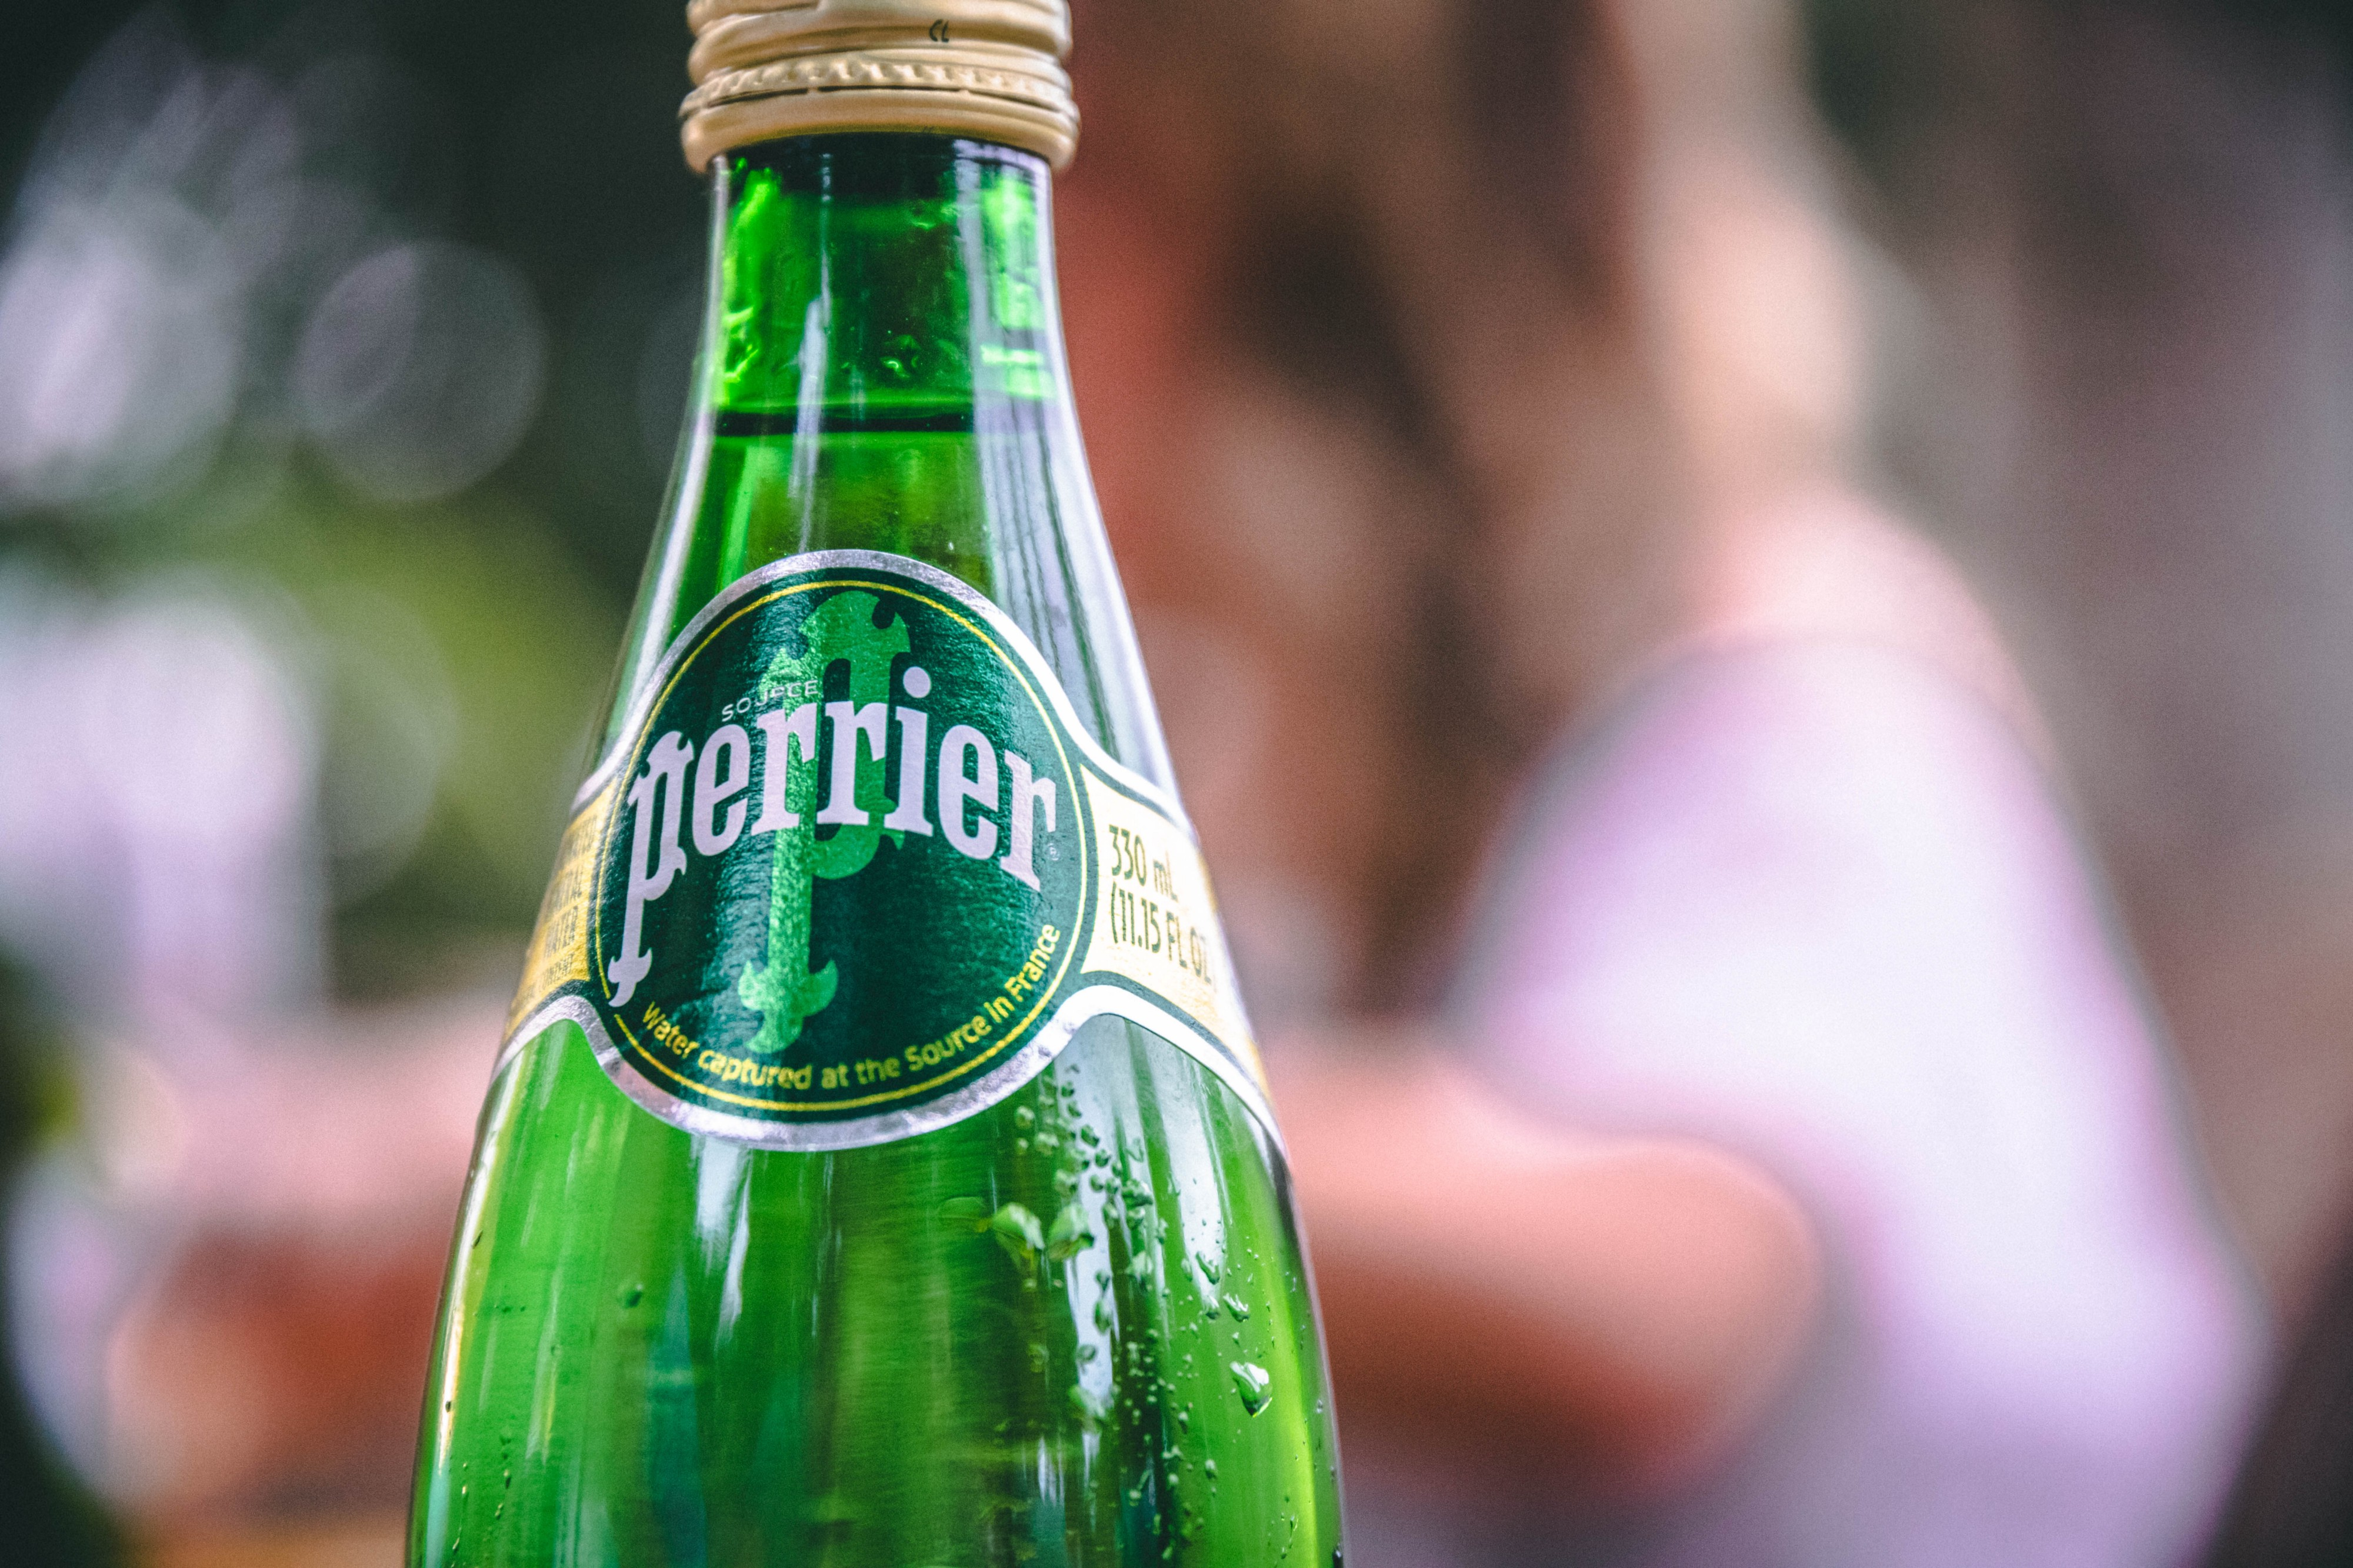 A bottle of Perrier.